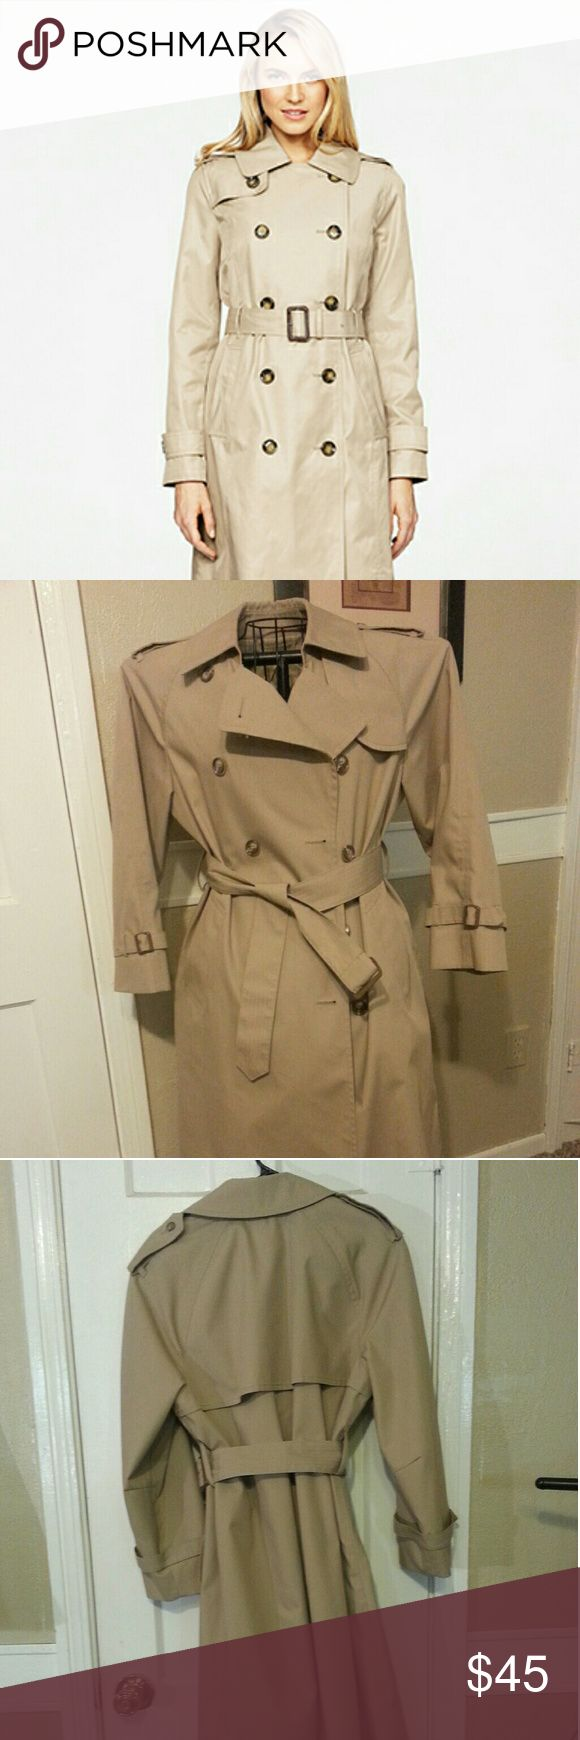 """London Fog trench coat Women's London Fog Double-breasted Trench Coat. The long length of this trench coat makes it a chic way to start the season! Notch collar; double-breasted button closure at front. Long sleeves. Self belt at waist. Slit pockets at hips. Mid-weight. Lined. Hits below knee; approx. 44"""" long. London Fog Jackets & Coats Trench Coats"""